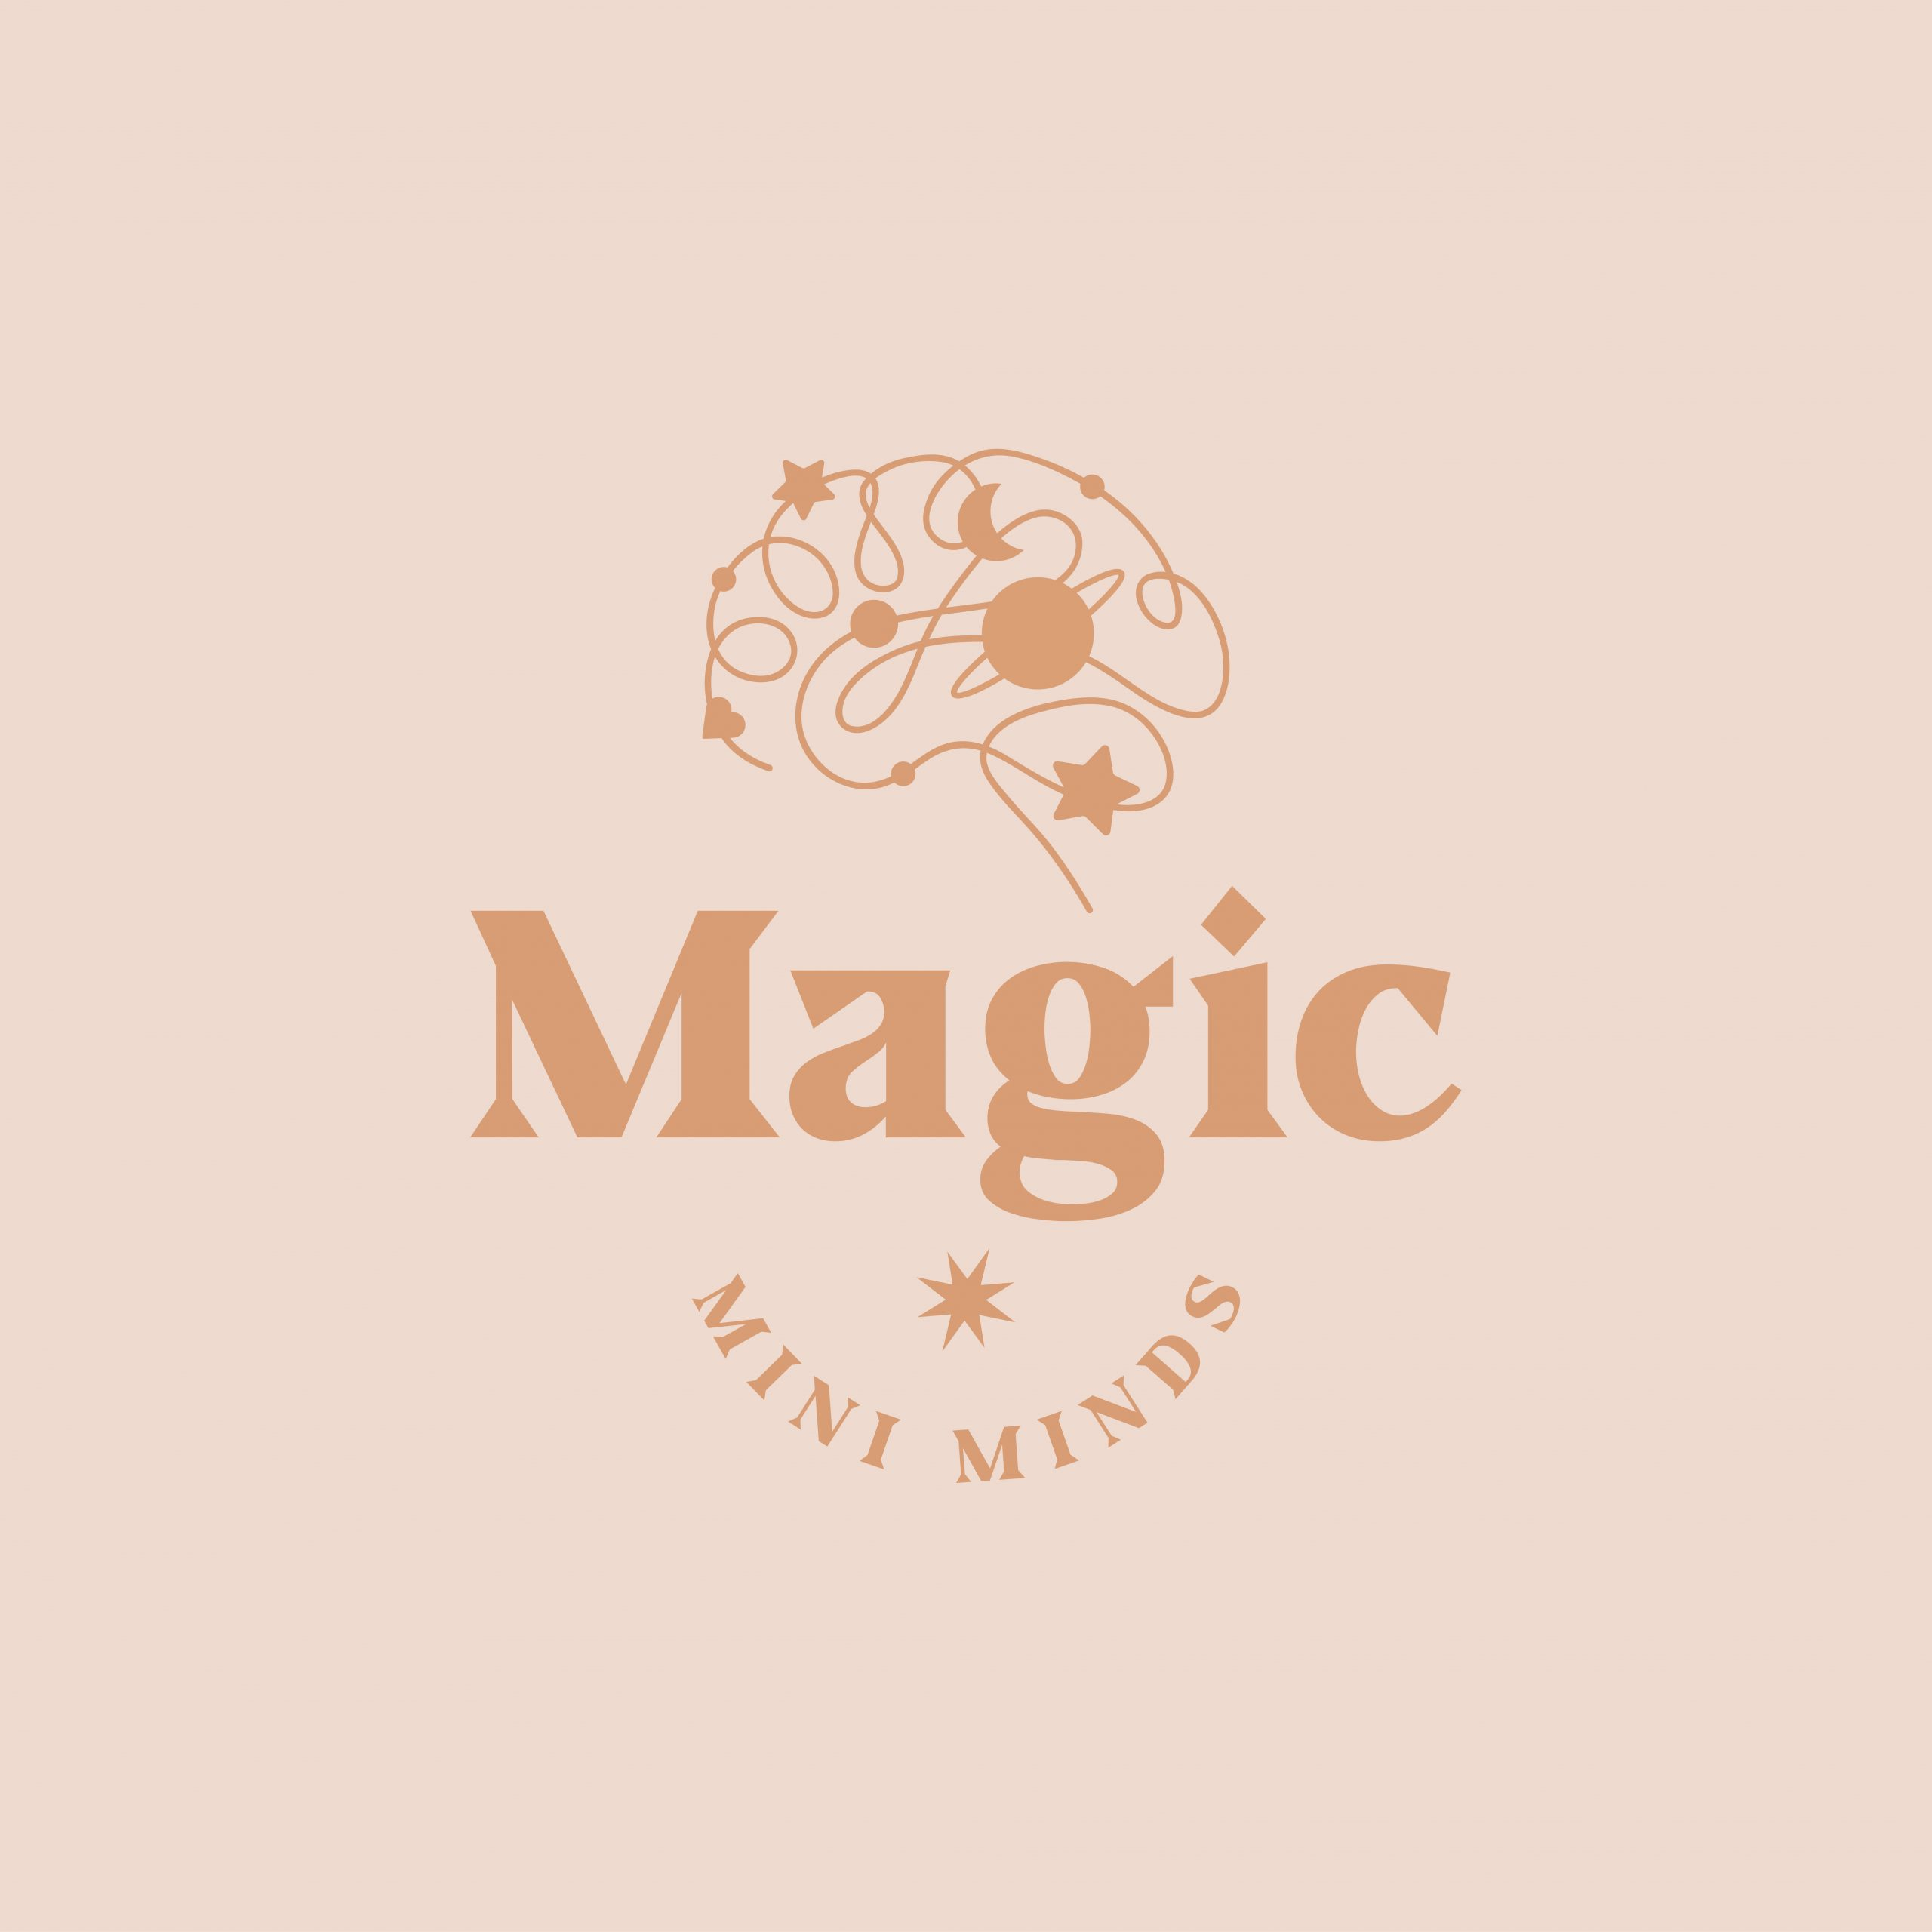 Magic Mini Minds logo2